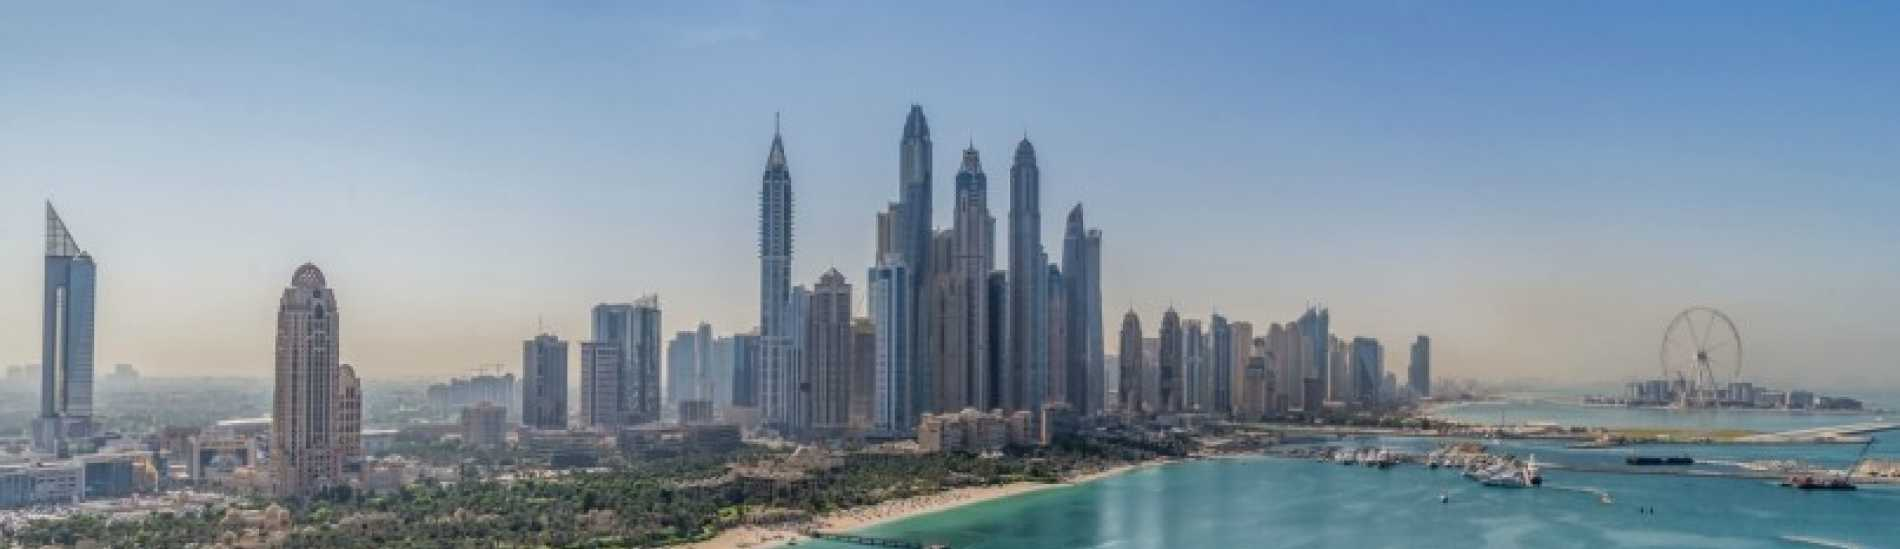 Best Waterfront Communities in Dubai